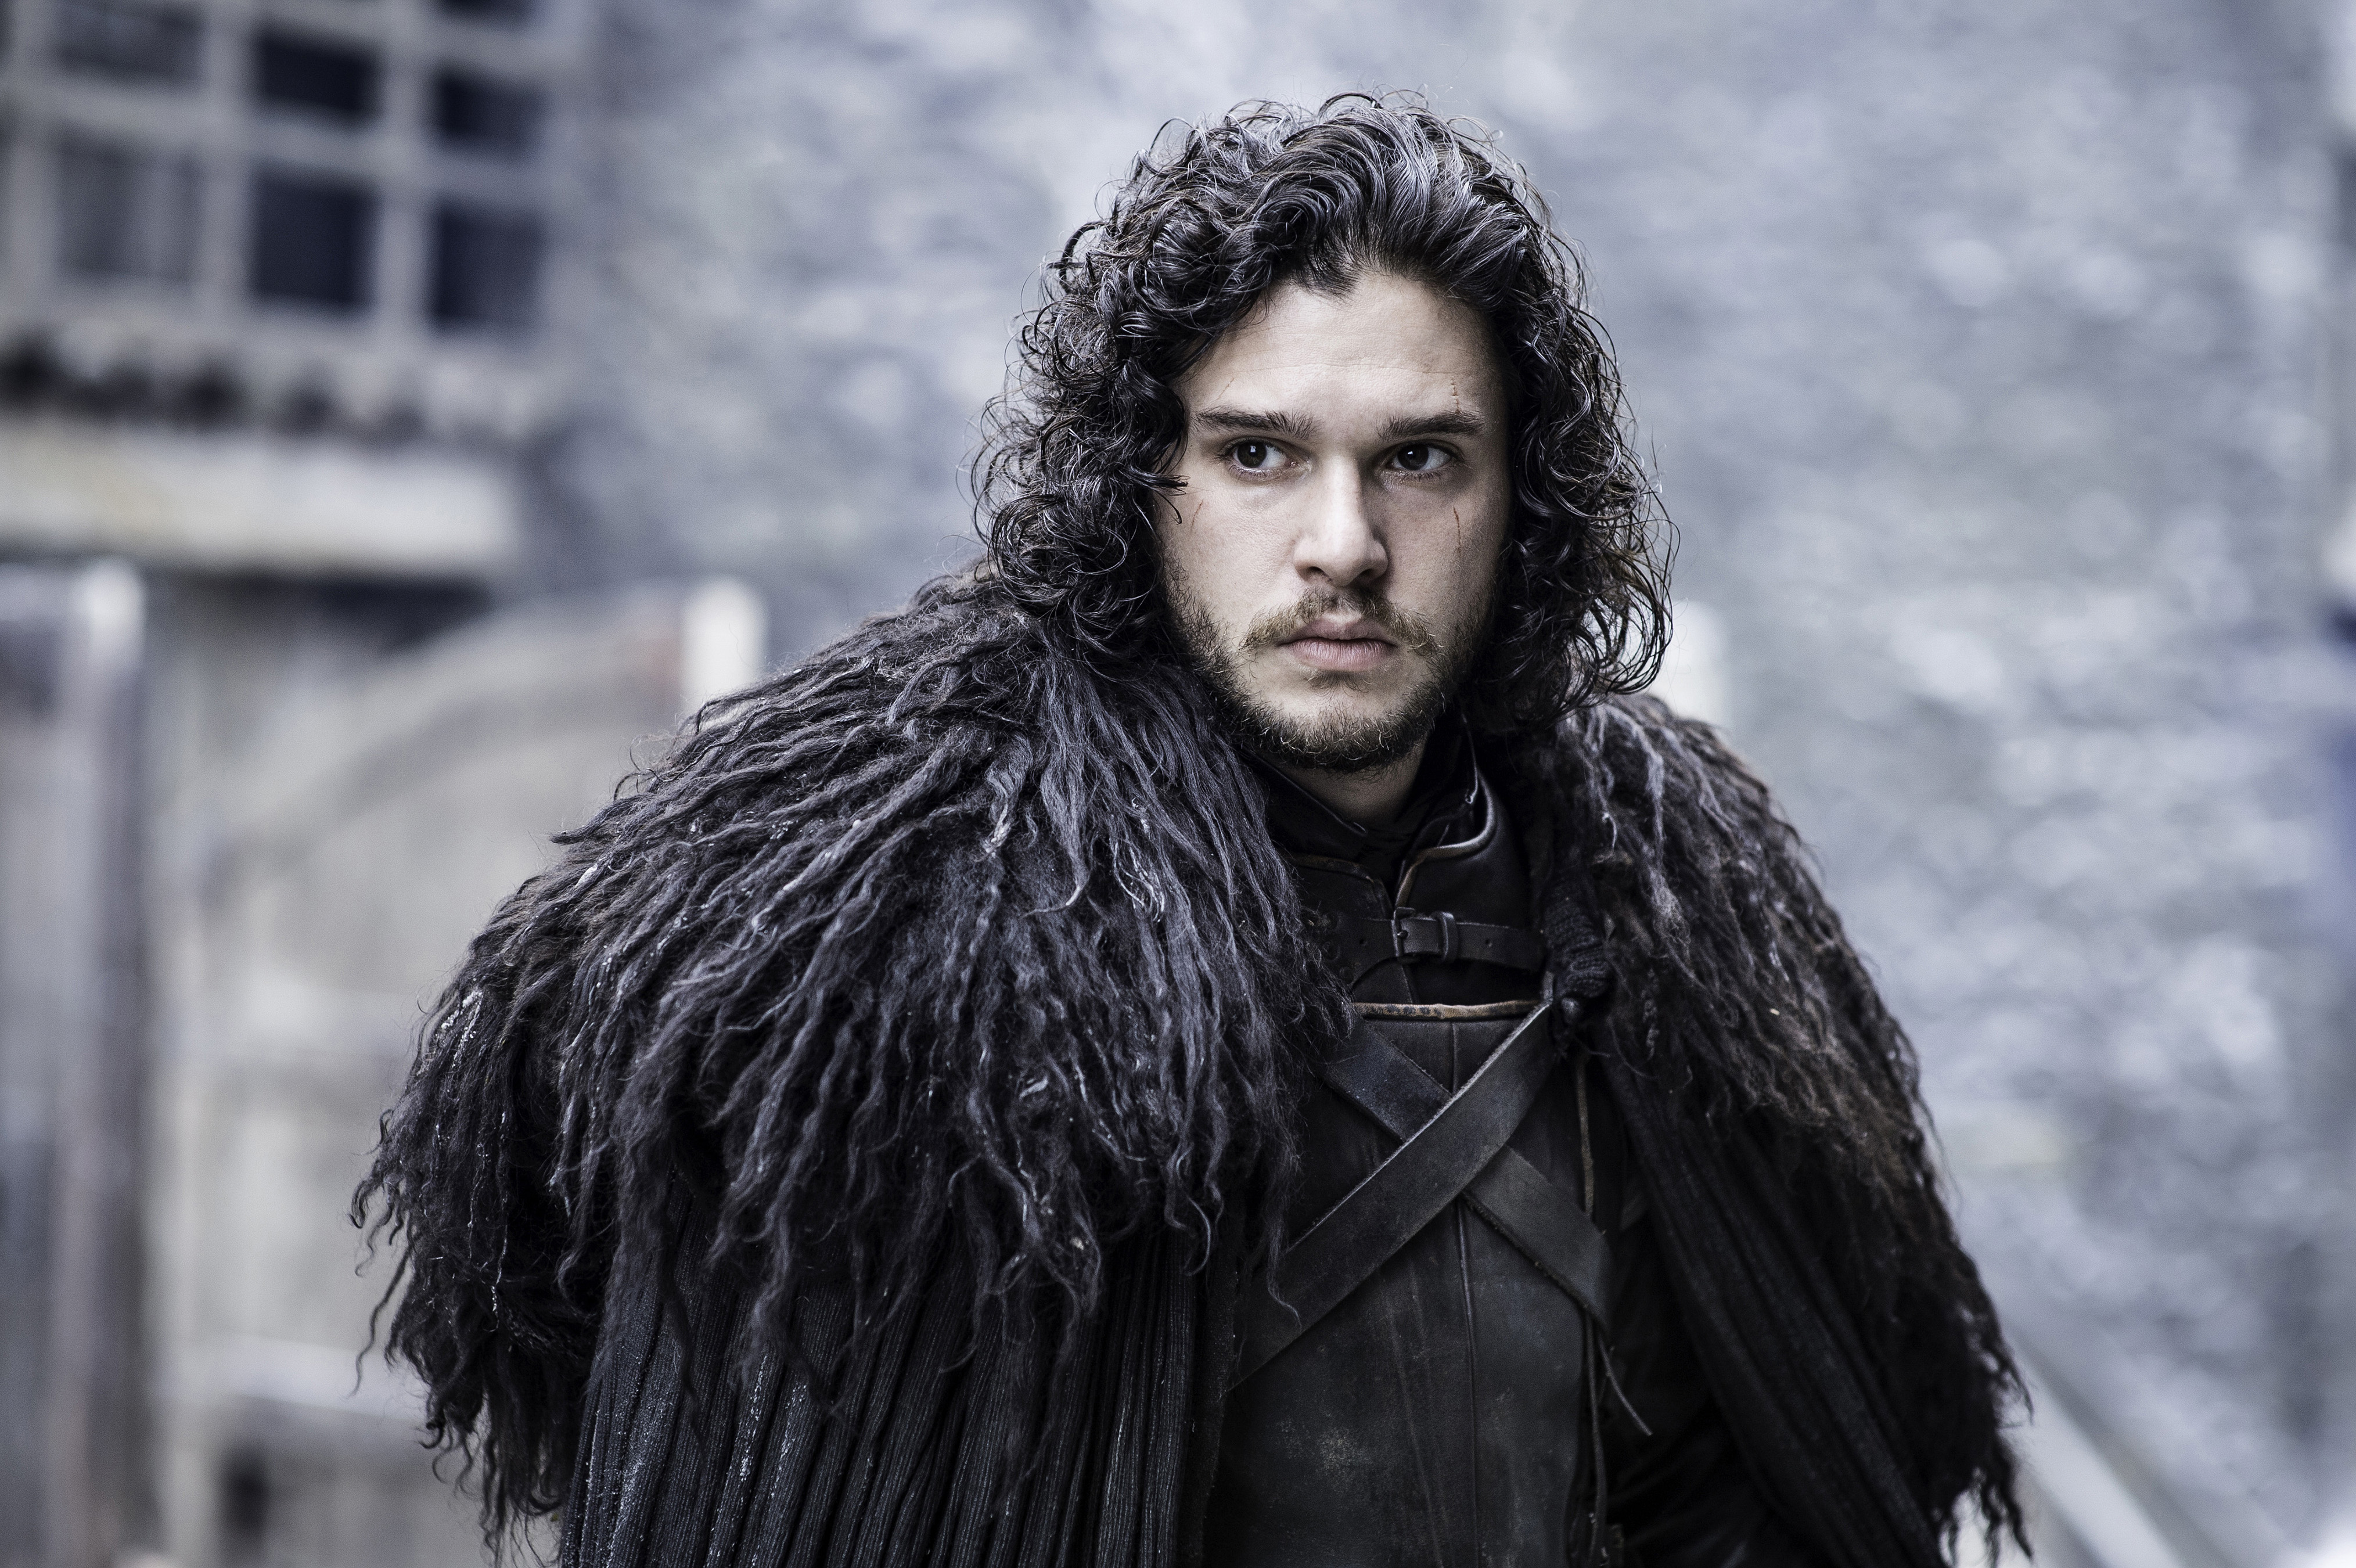 Jon Snow Clues From The Books That Prove 'Game Of Thrones